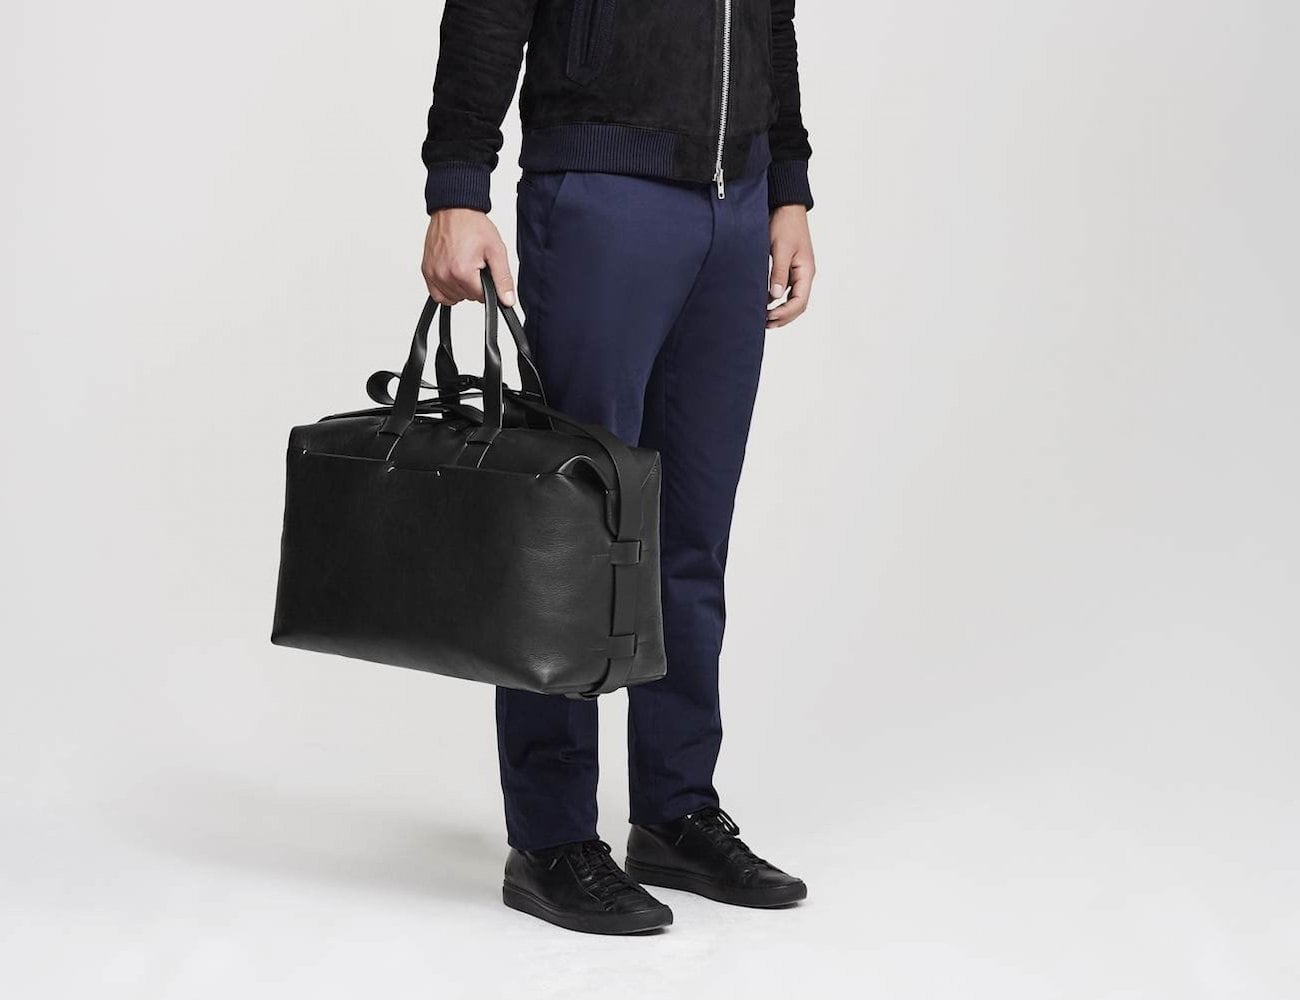 Troubadour Weekender Men's Luxury Weekend Bag